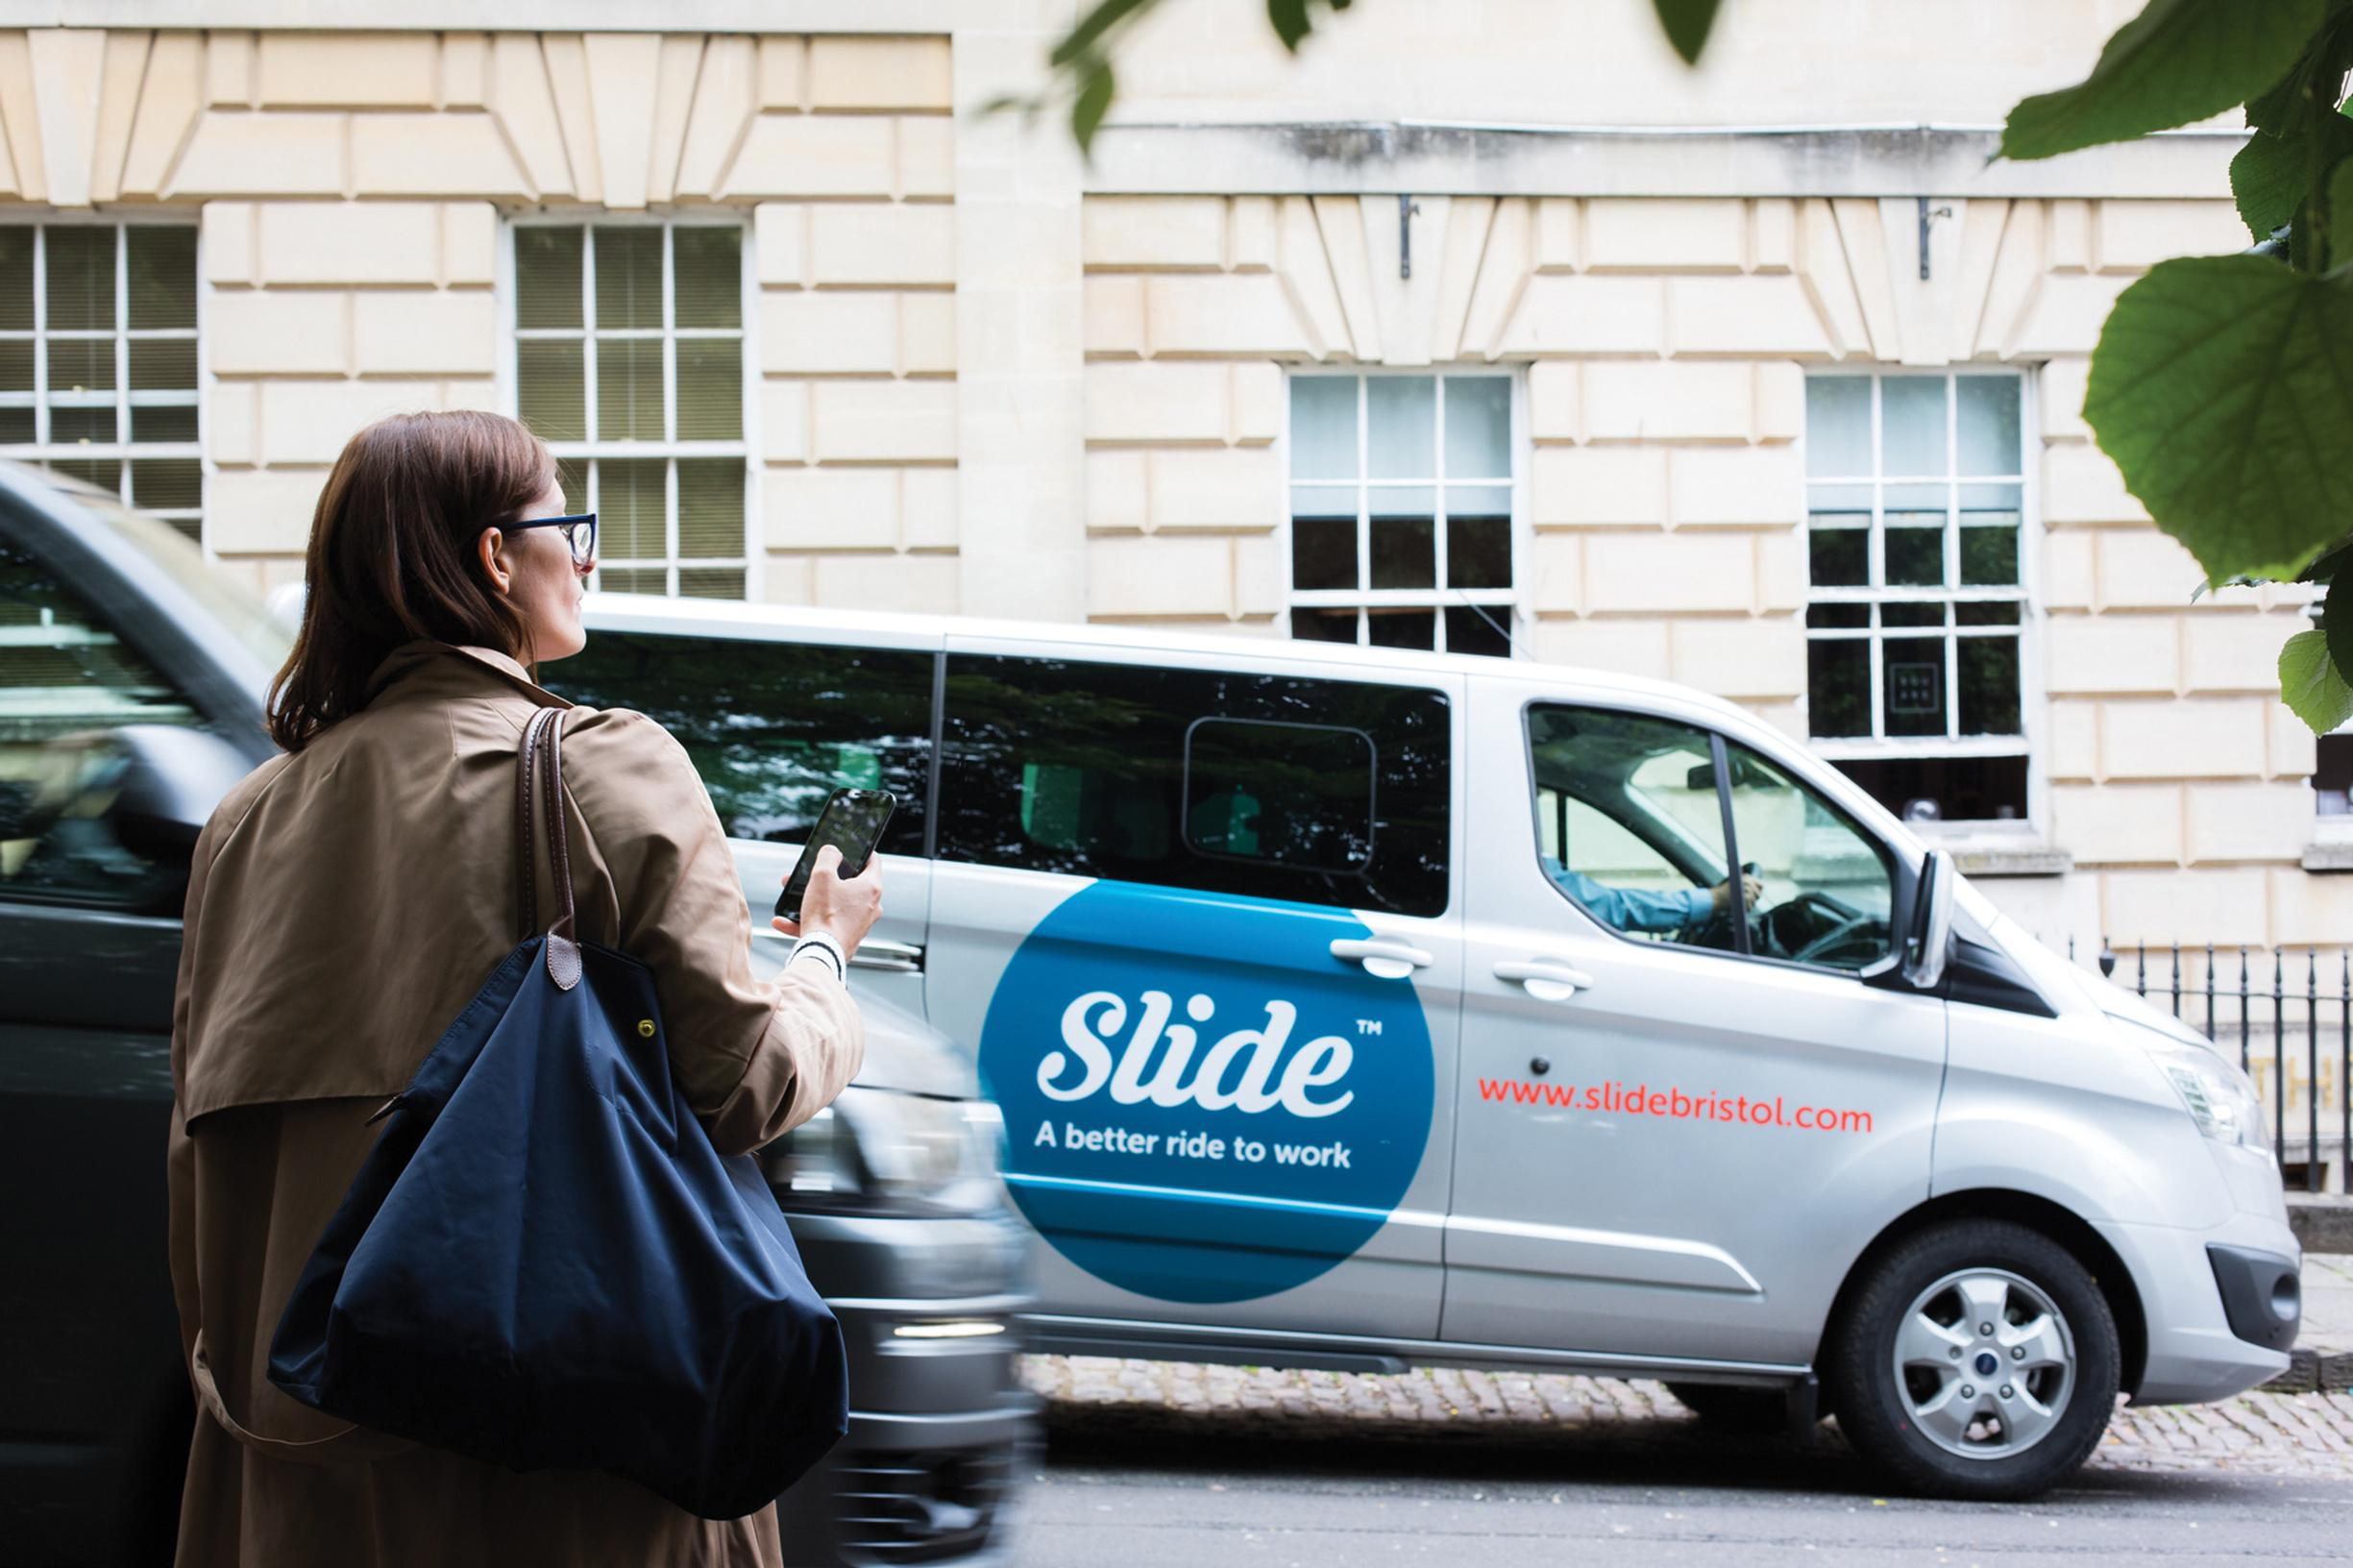 Slide Bristol customers can book journeys via an app up to 10 minutes before travel